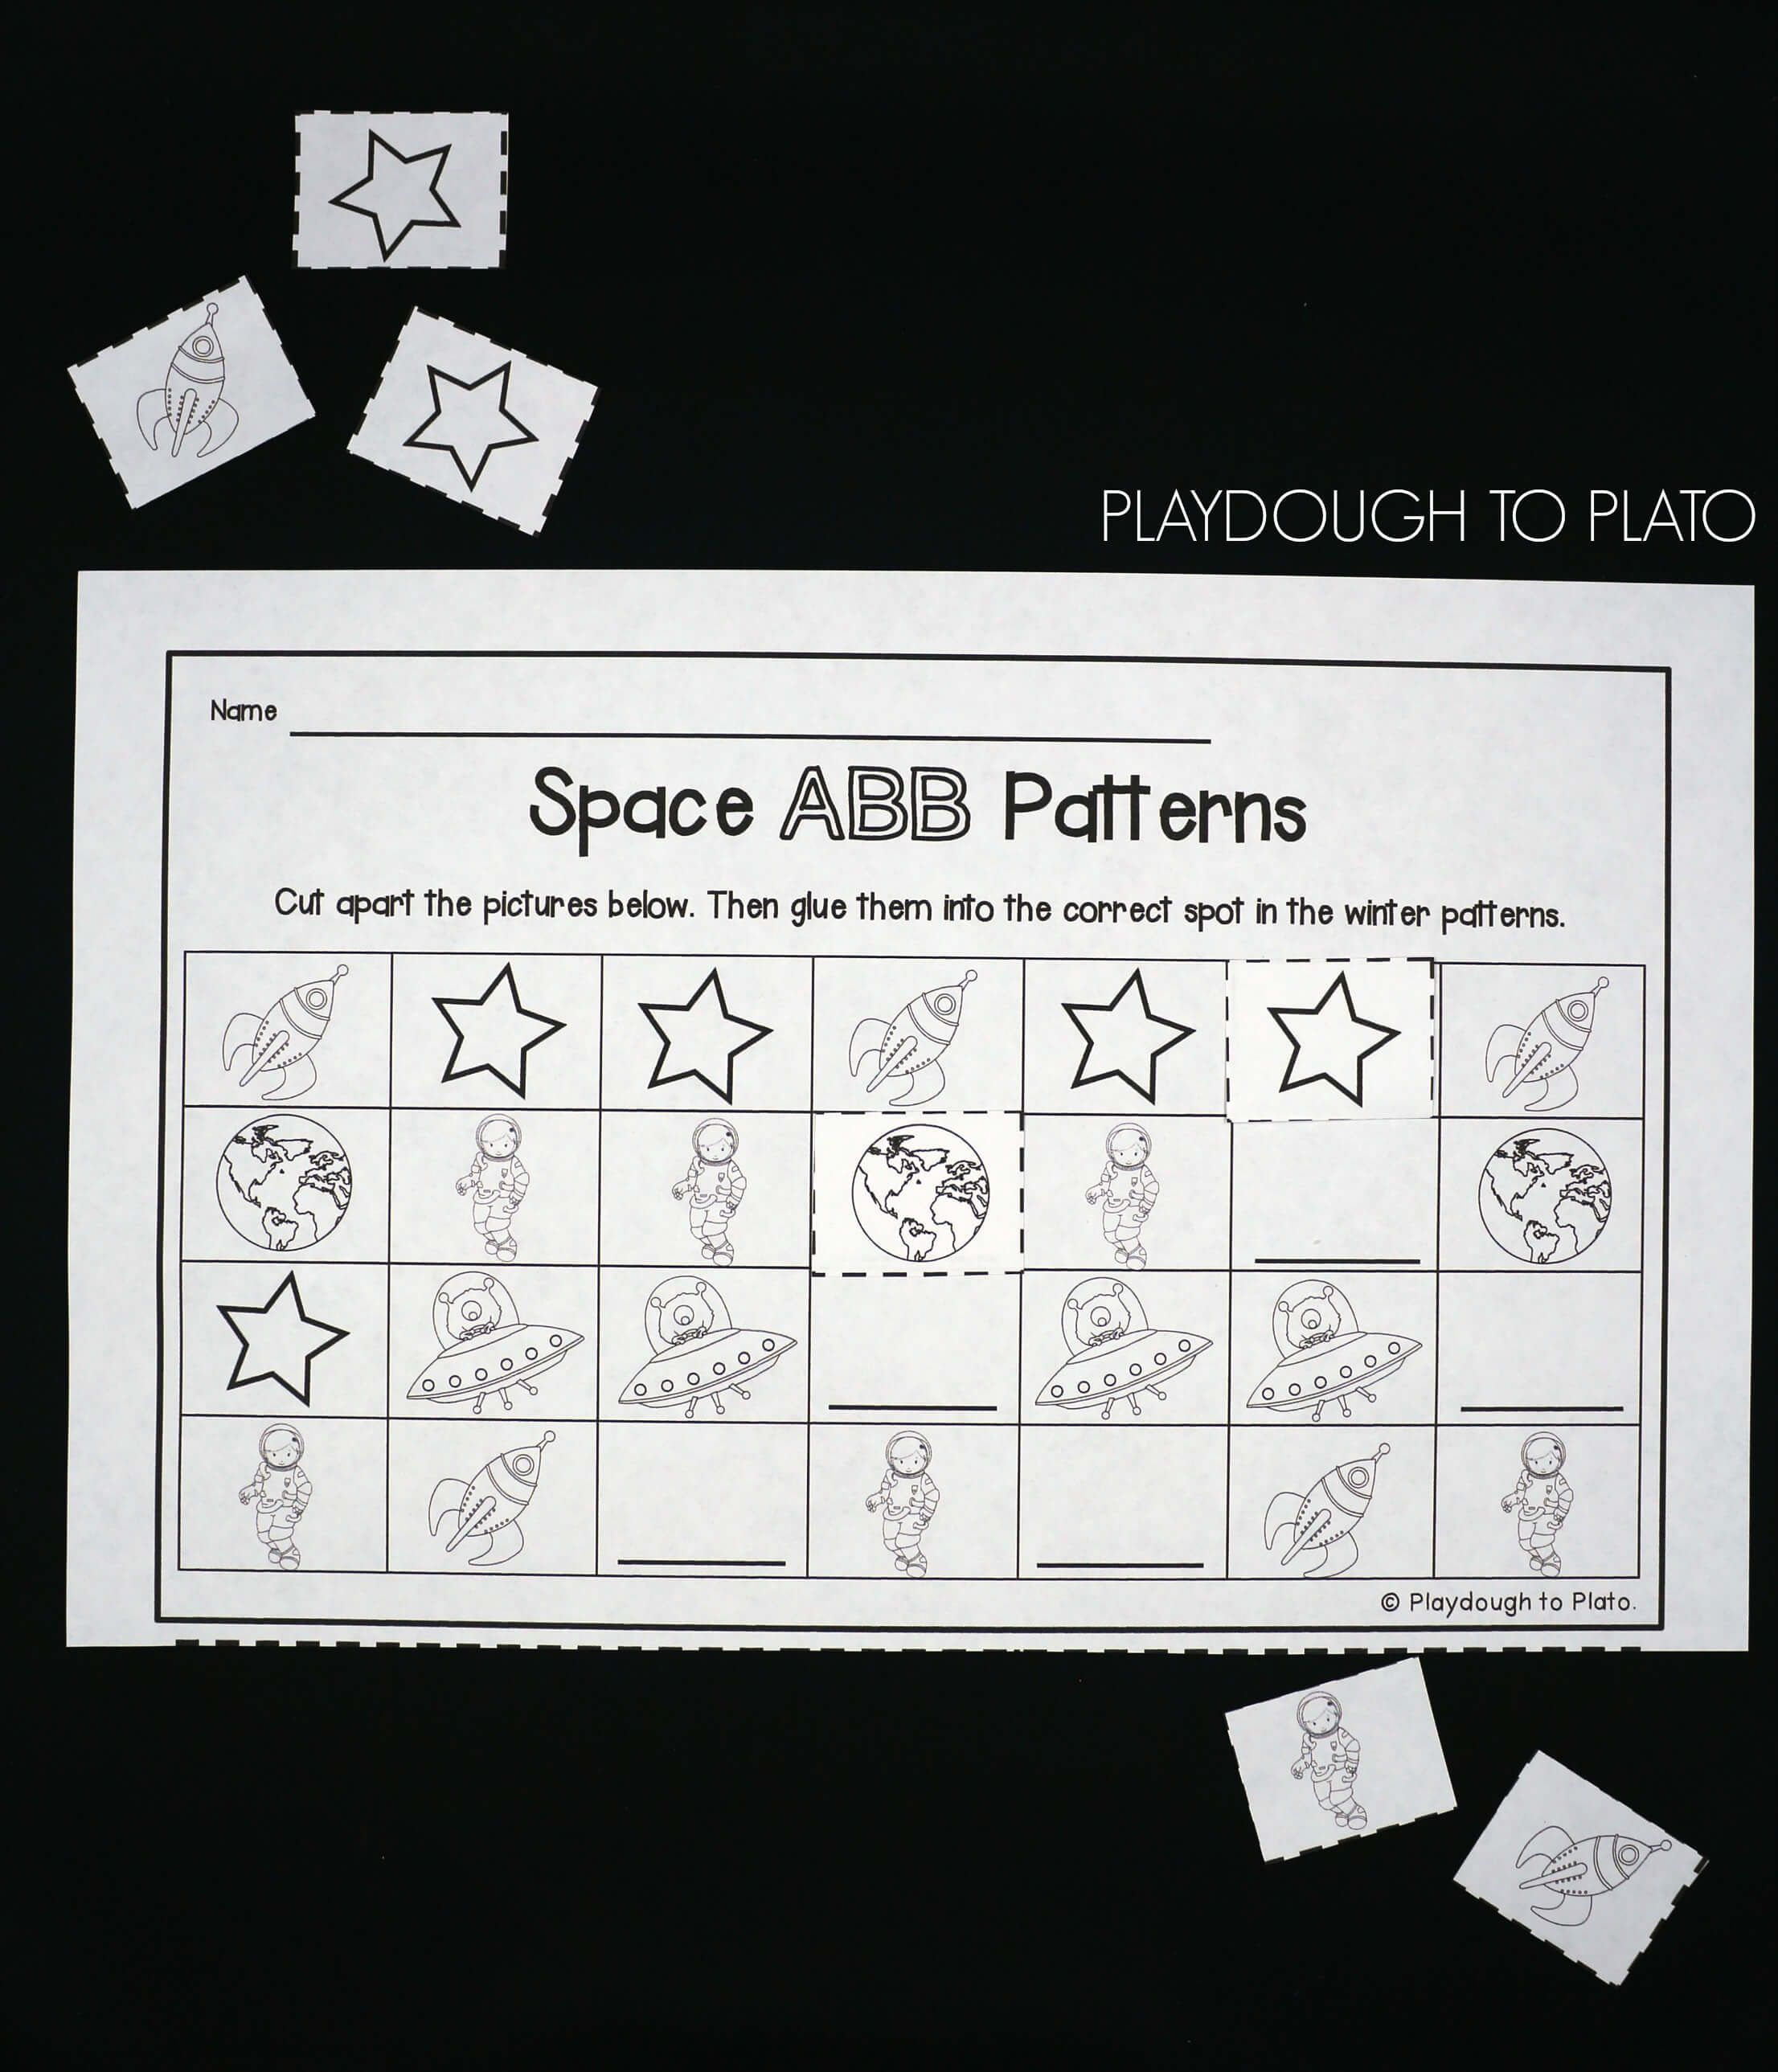 25 Outer Space Activities Playdough To Plato Space Activities Outer Space Activities Abb Patterns [ 2578 x 2212 Pixel ]